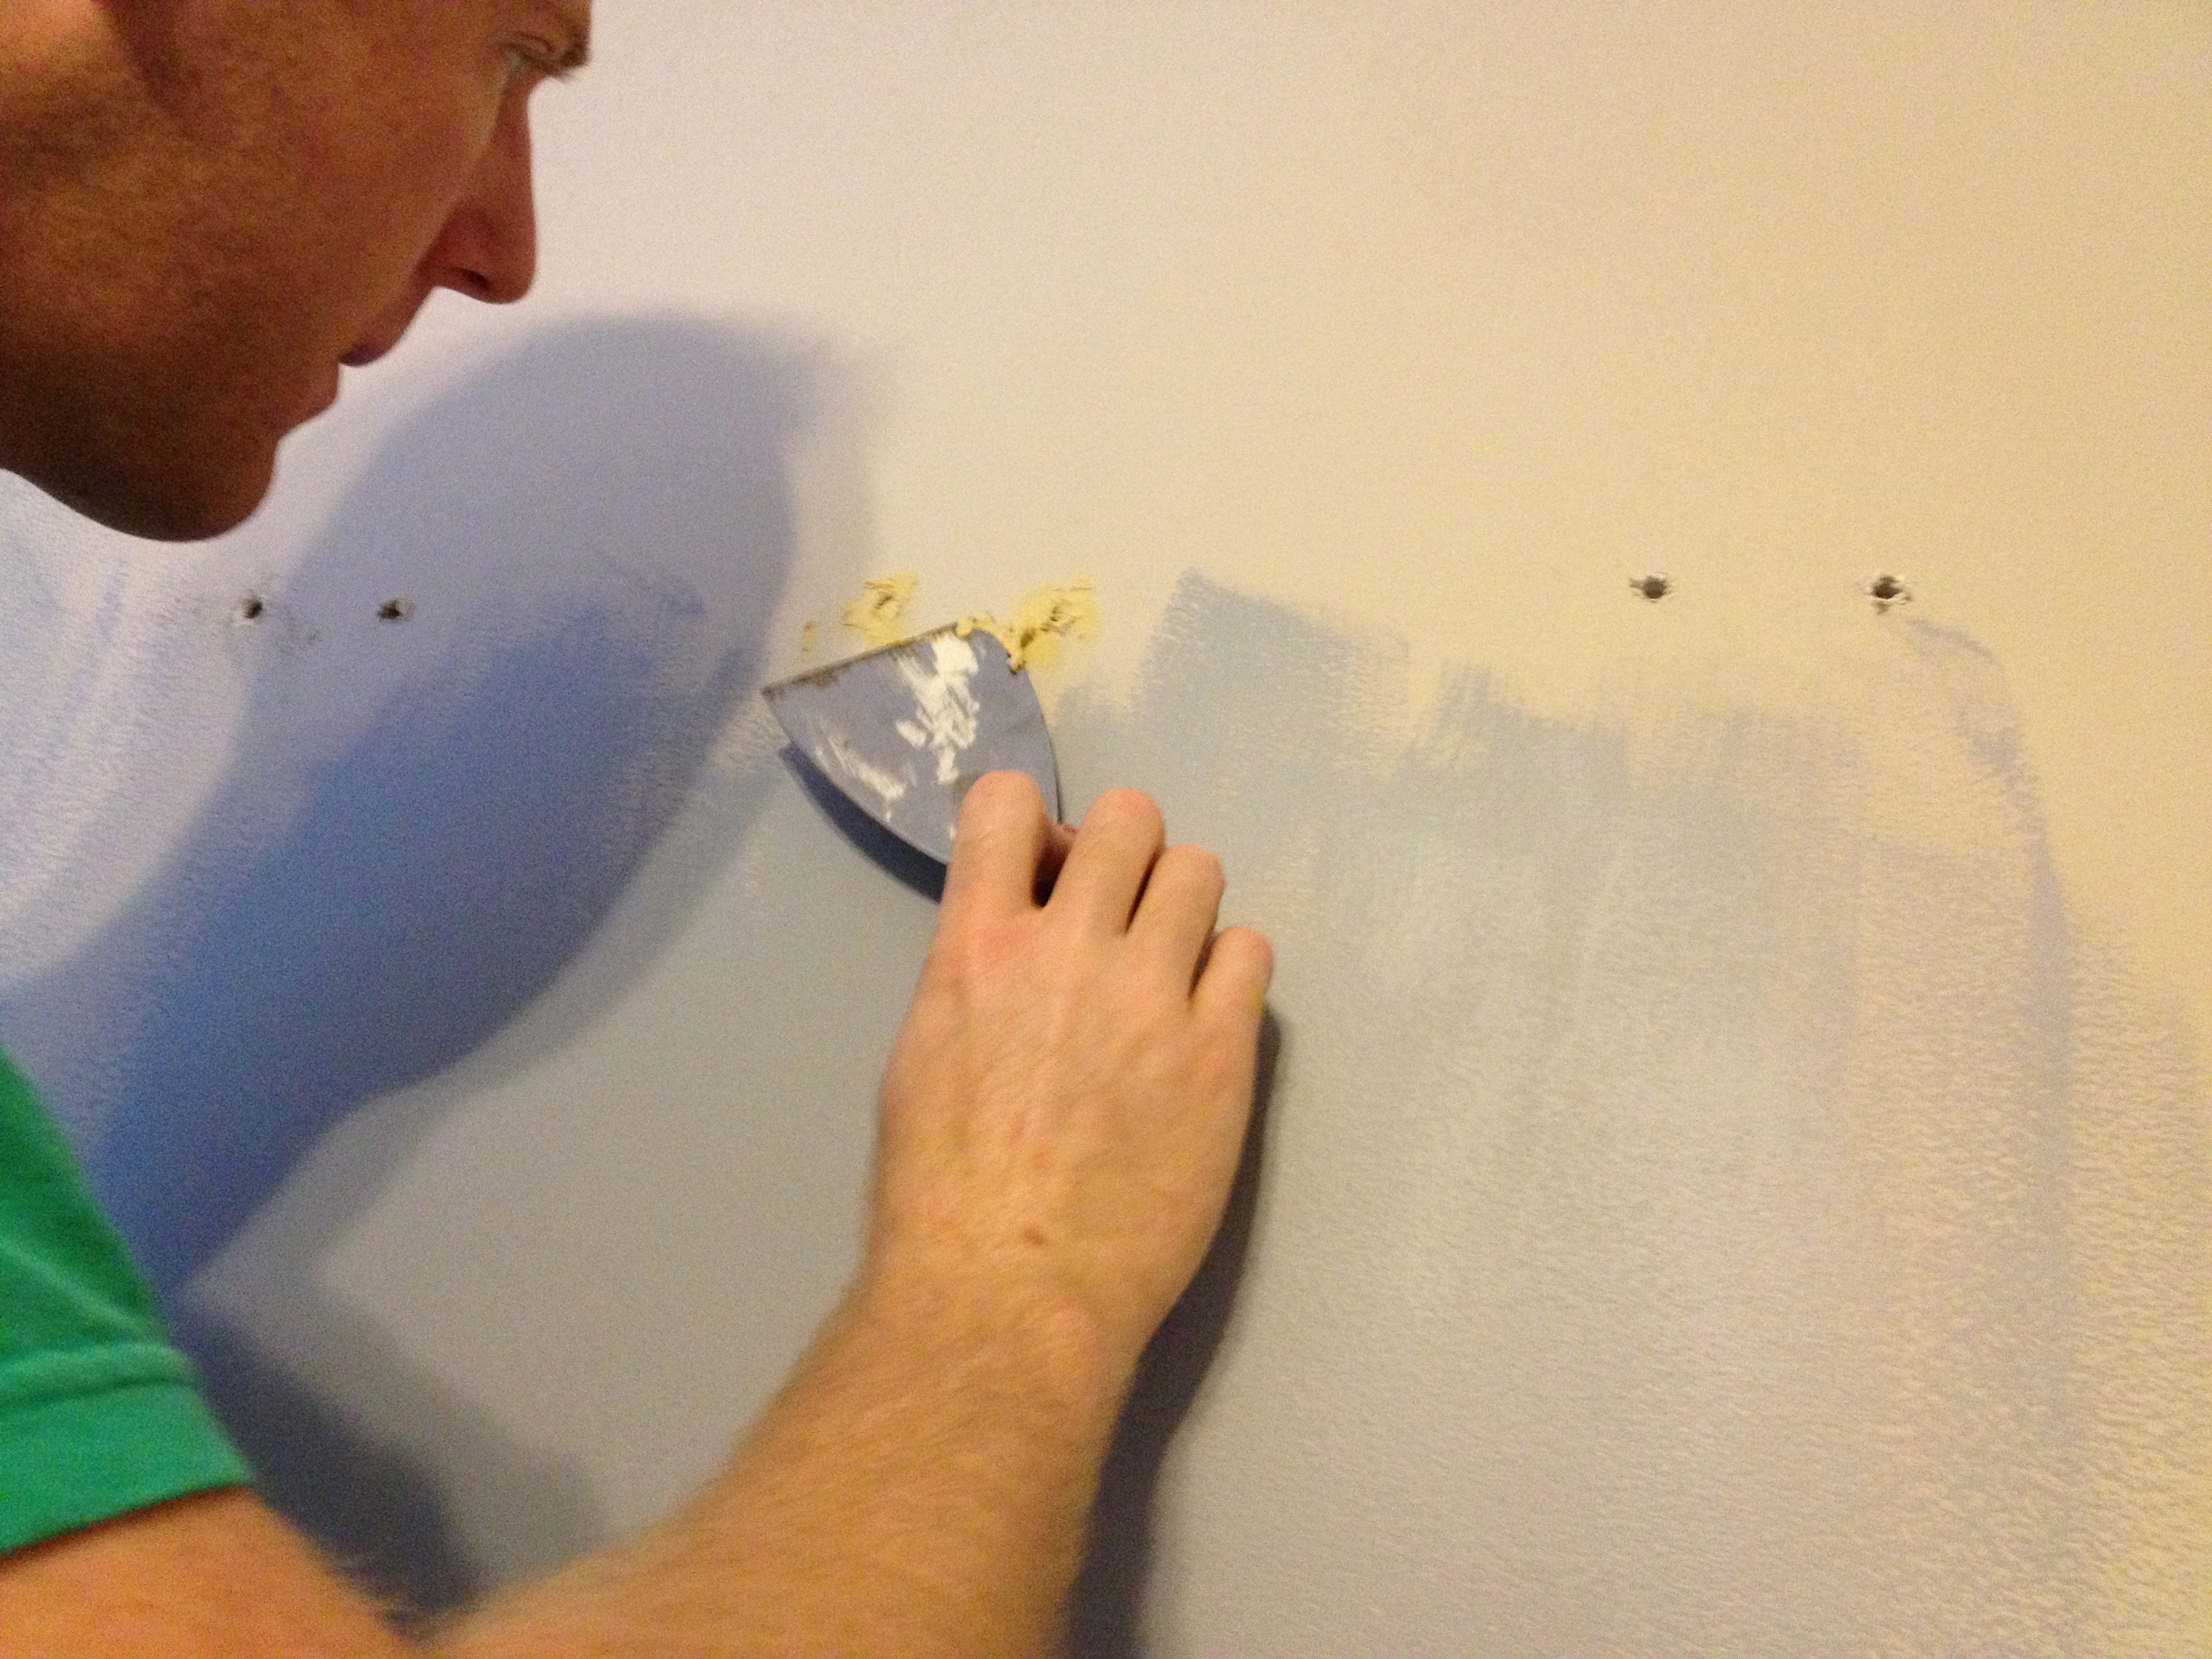 prepping for painting patching holes in the wall charlestoncrafted. Black Bedroom Furniture Sets. Home Design Ideas